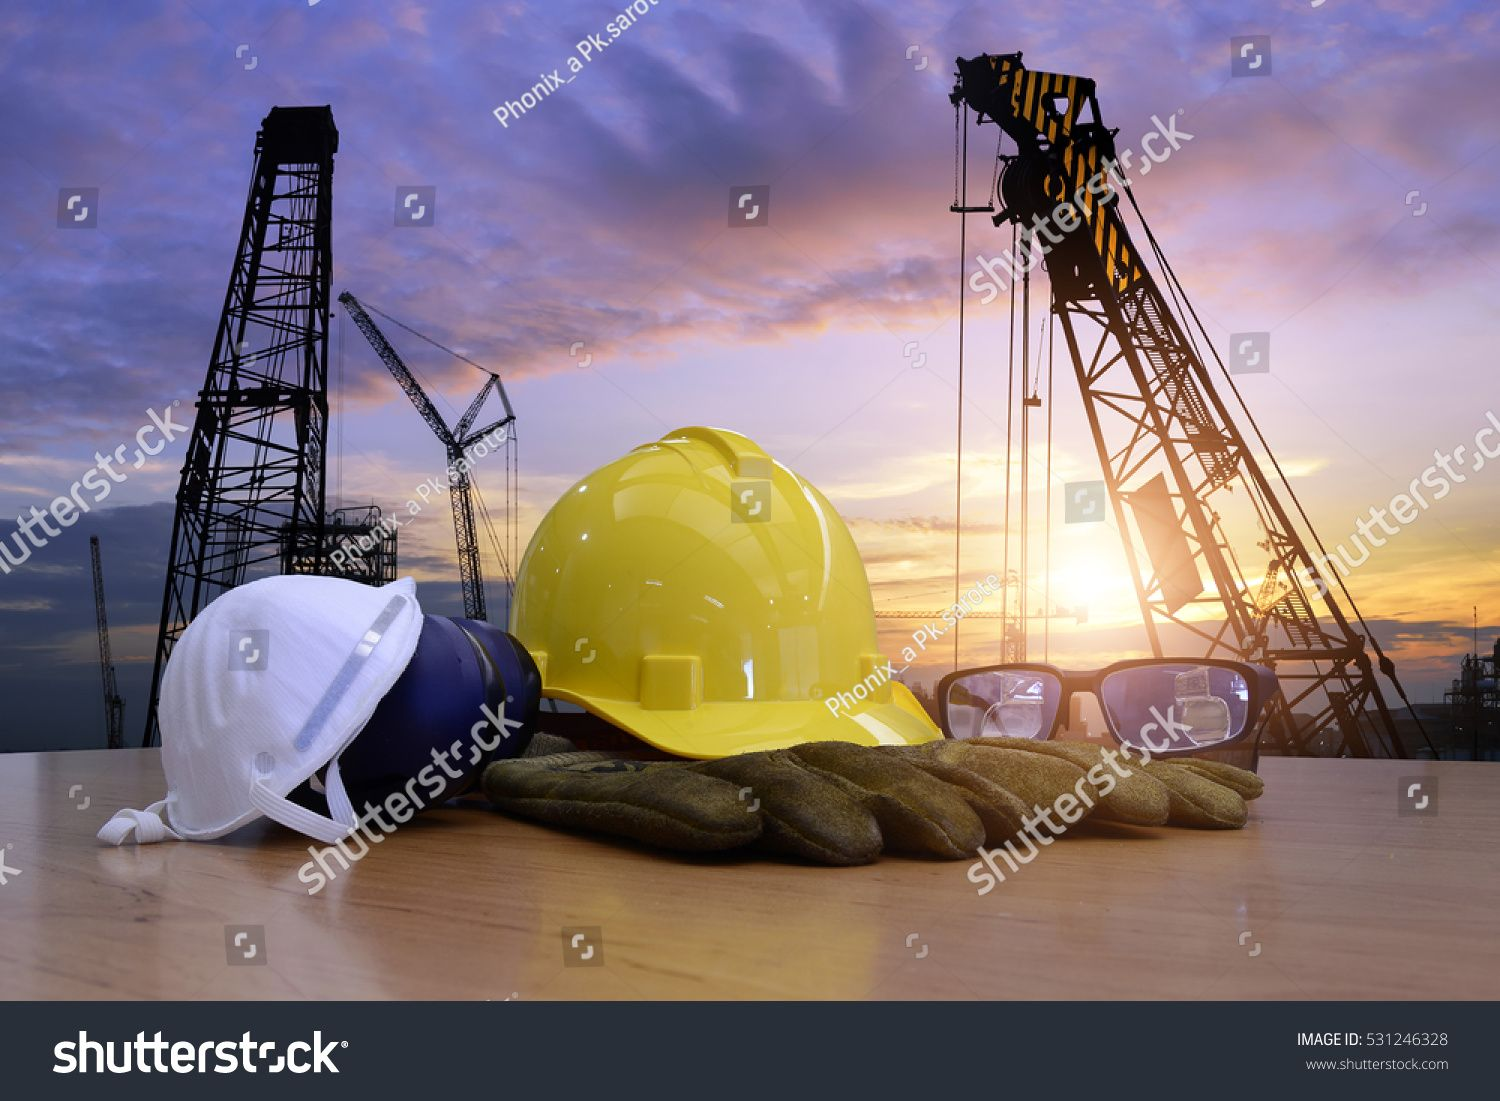 Standard construction safety and construction site